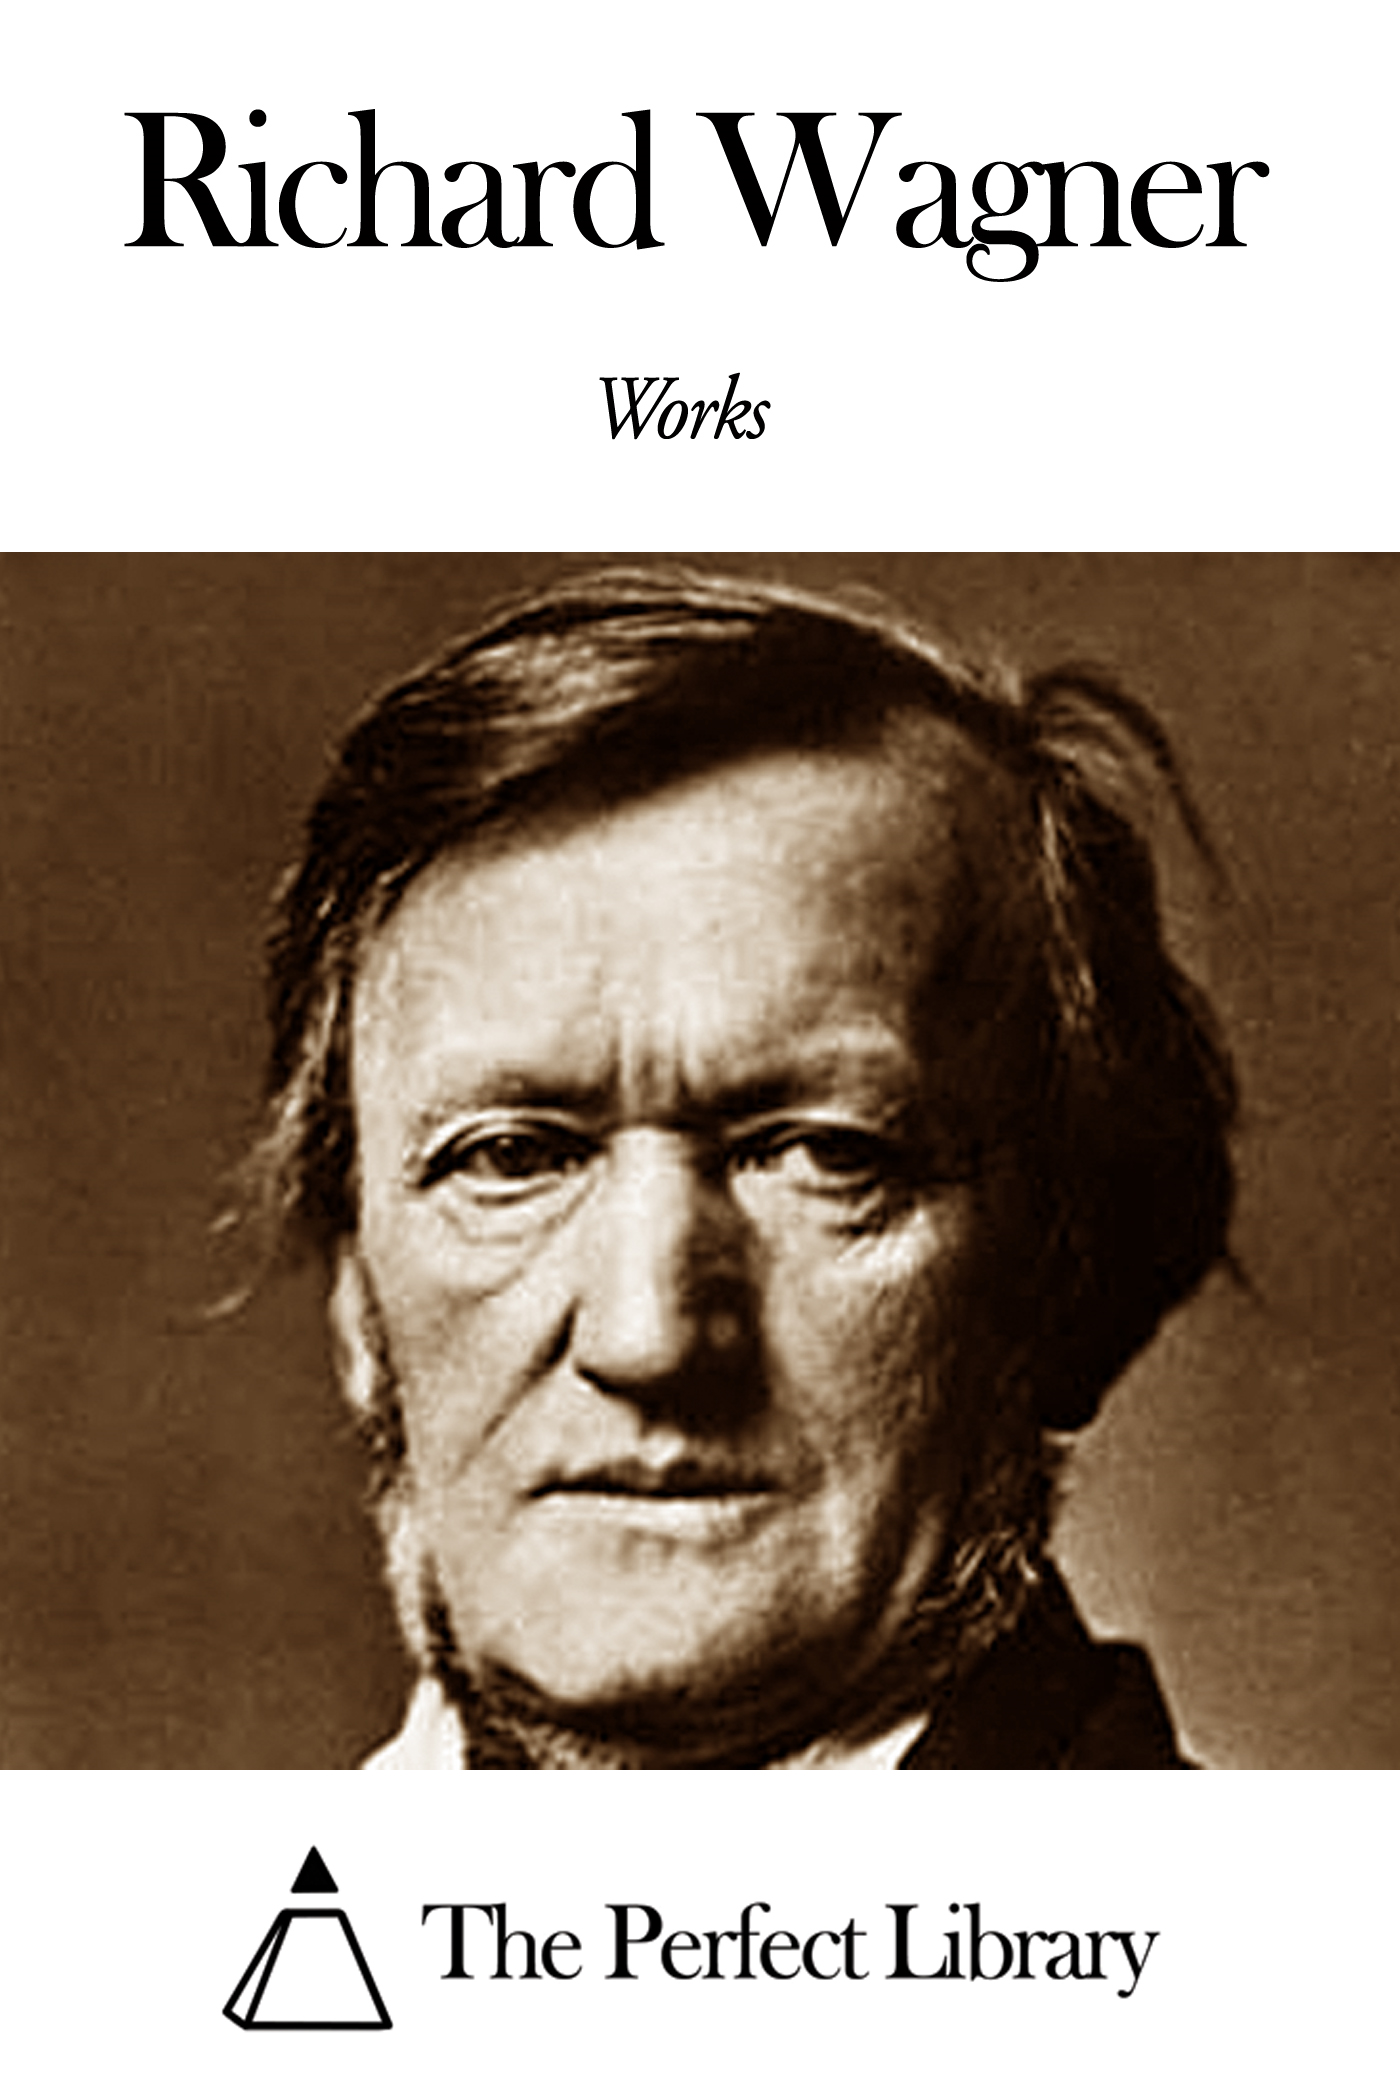 Works of Richard Wagner